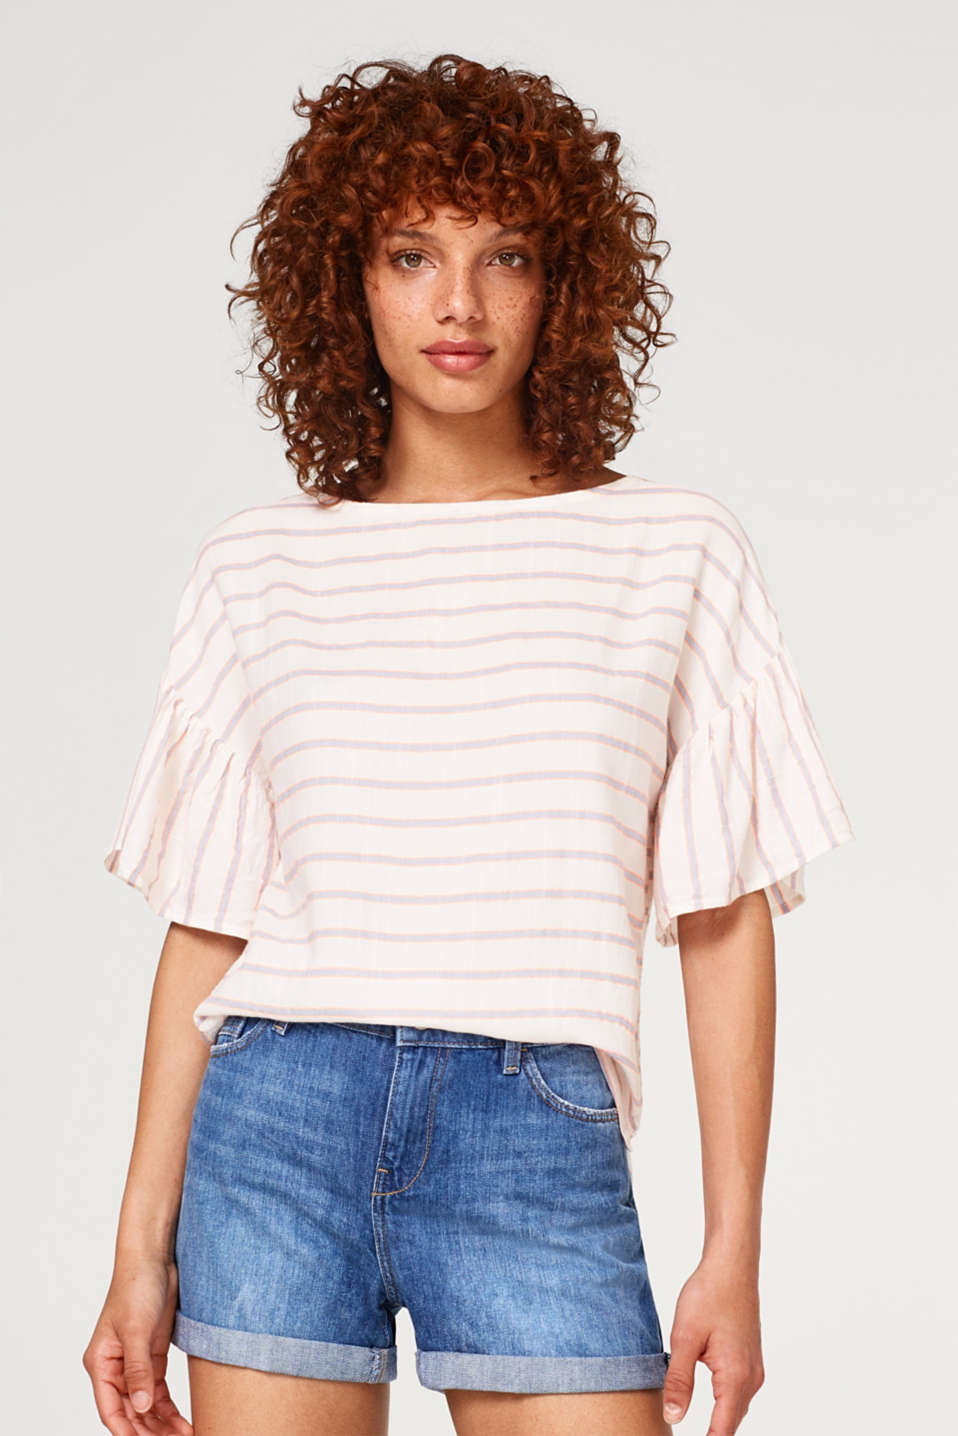 edc - Lightweight woven blouse with stripes and cap sleeves